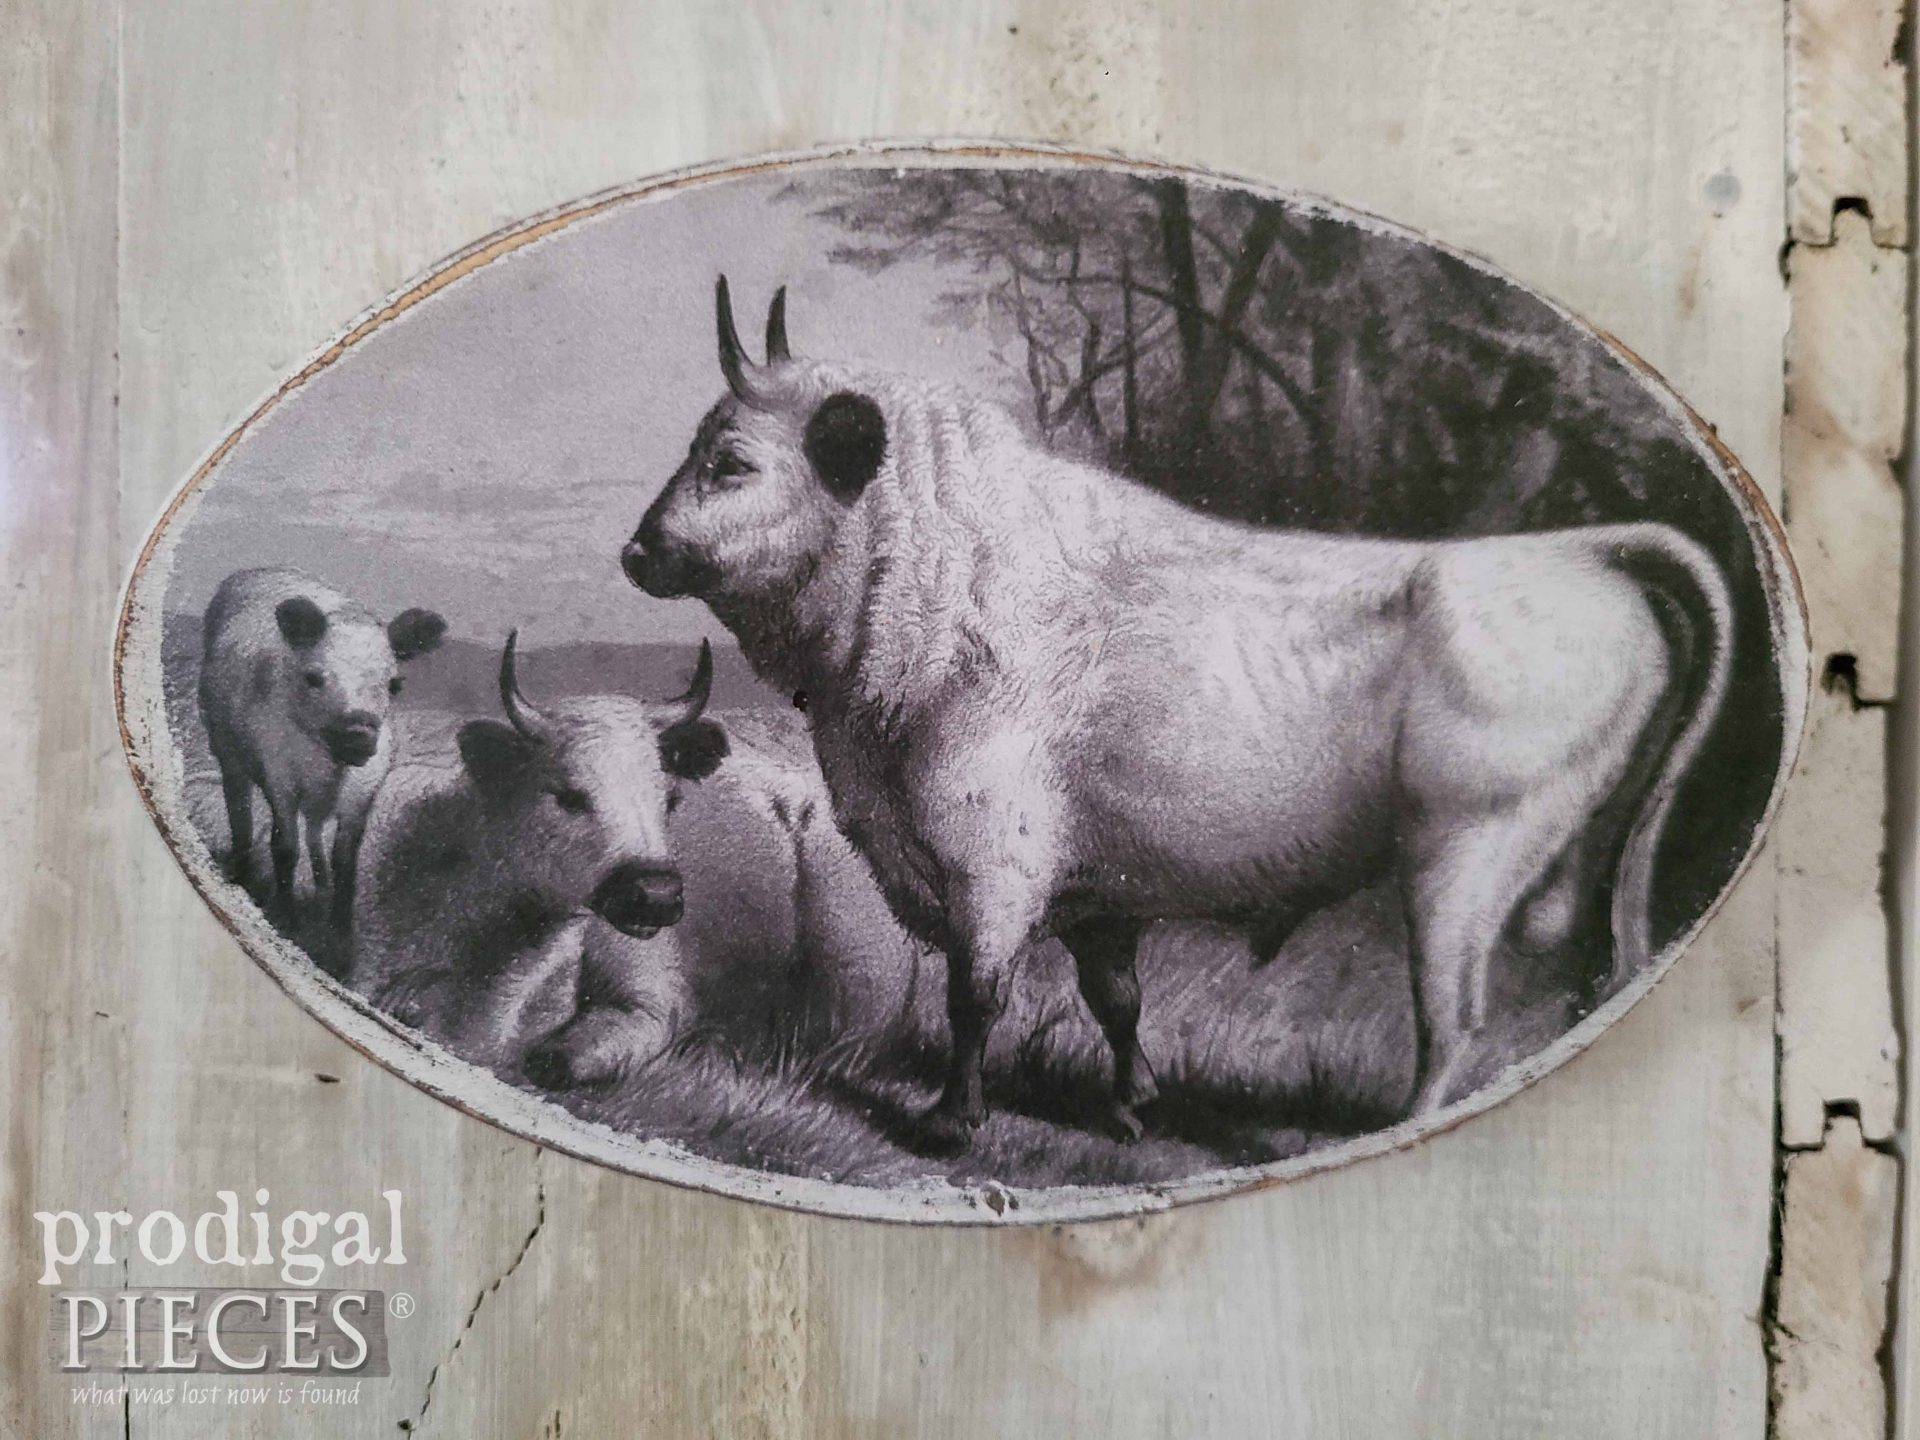 Vintage Cow Print with White Bull by Prodigal Pieces | prodigalpieces.com #prodigalpieces #bull #cow #print